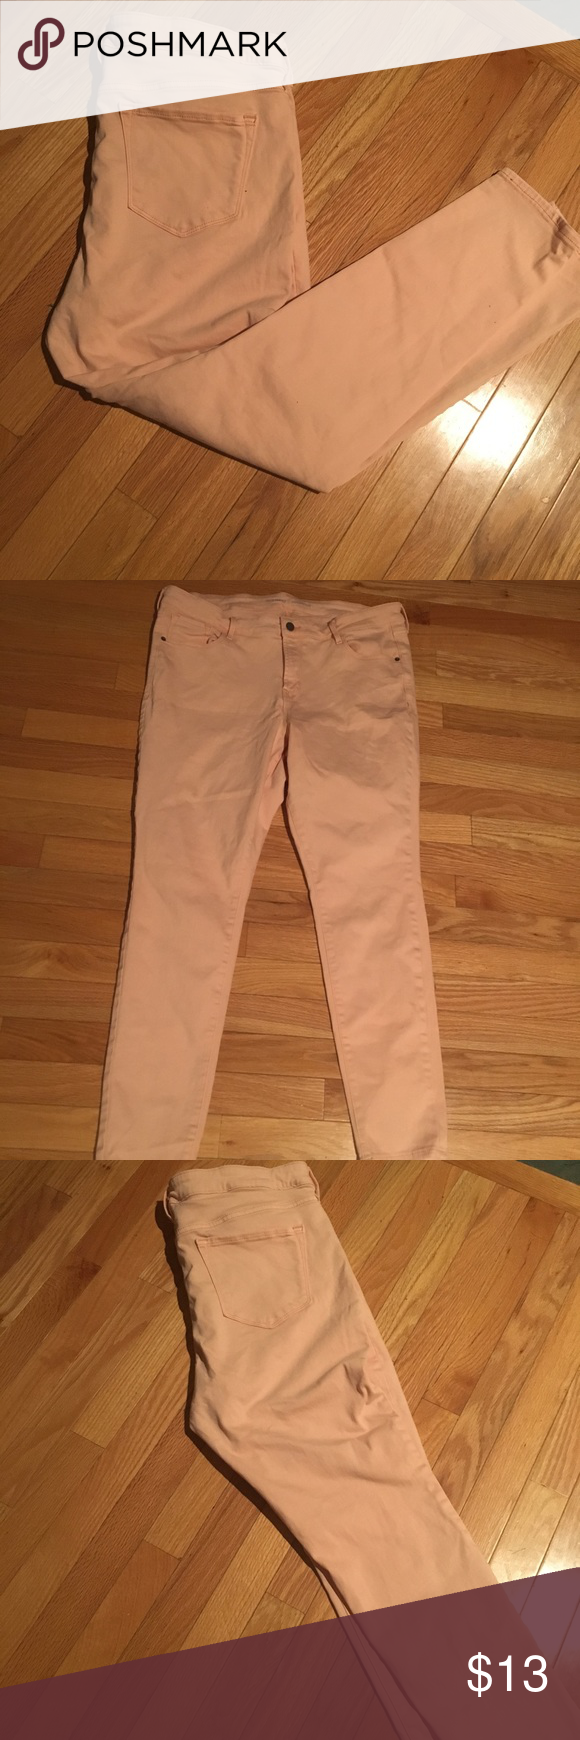 ac91fec772ae3 Peach Rockstar Jeggings 🍑 Old Navy rockstar jeggings!! Stretchy and  comfortable! Old Navy Jeans